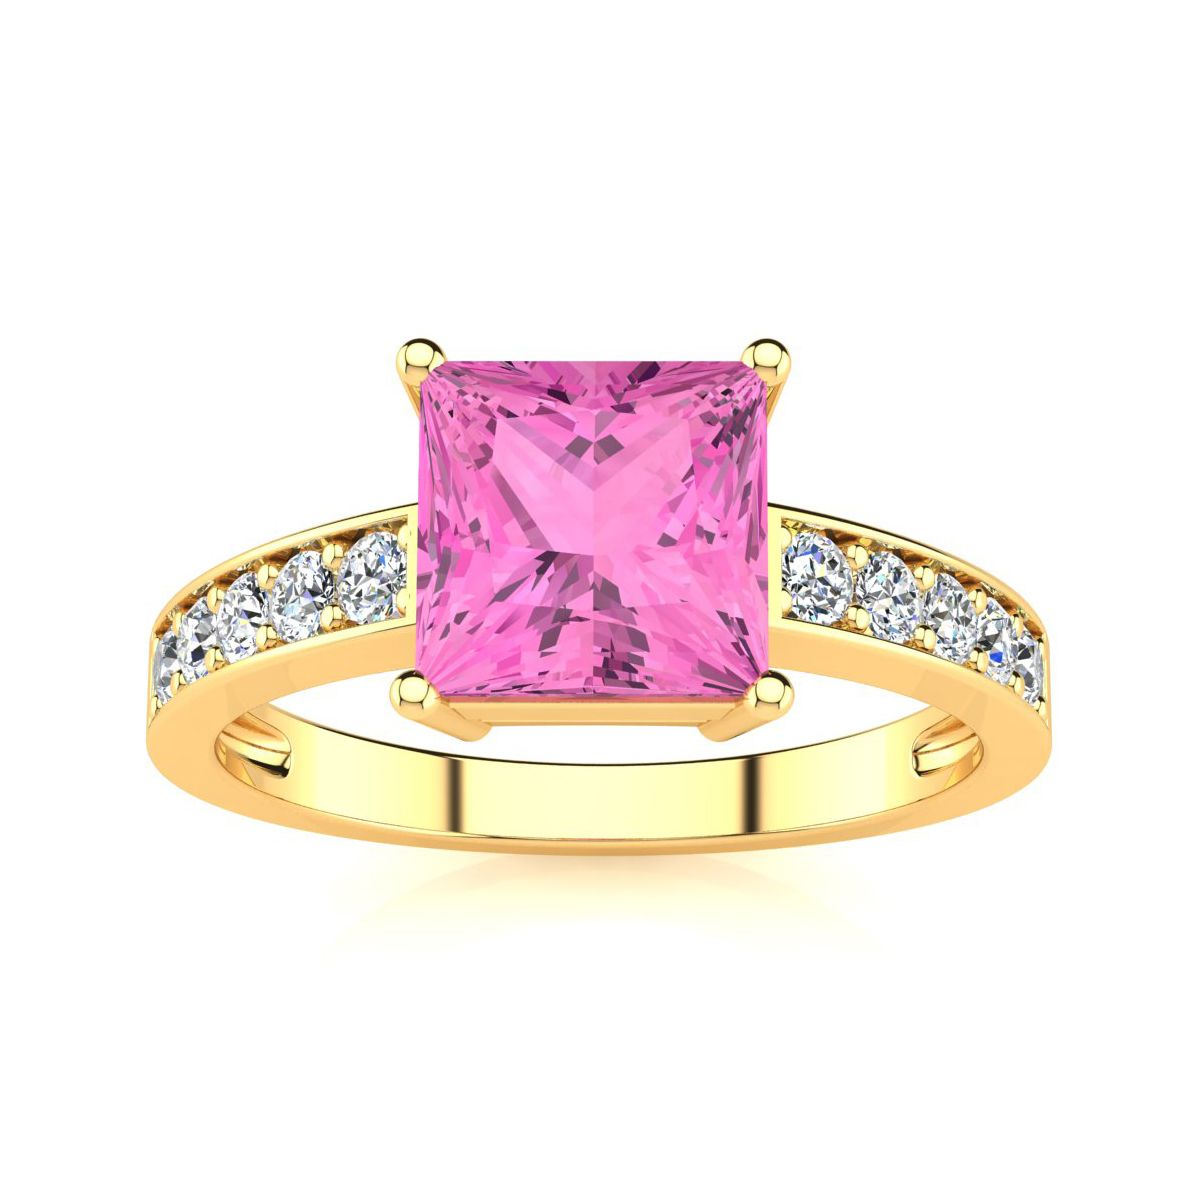 Square Step Cut 1 7/8ct Pink Topaz and Diamond Ring in 14K Yellow ...